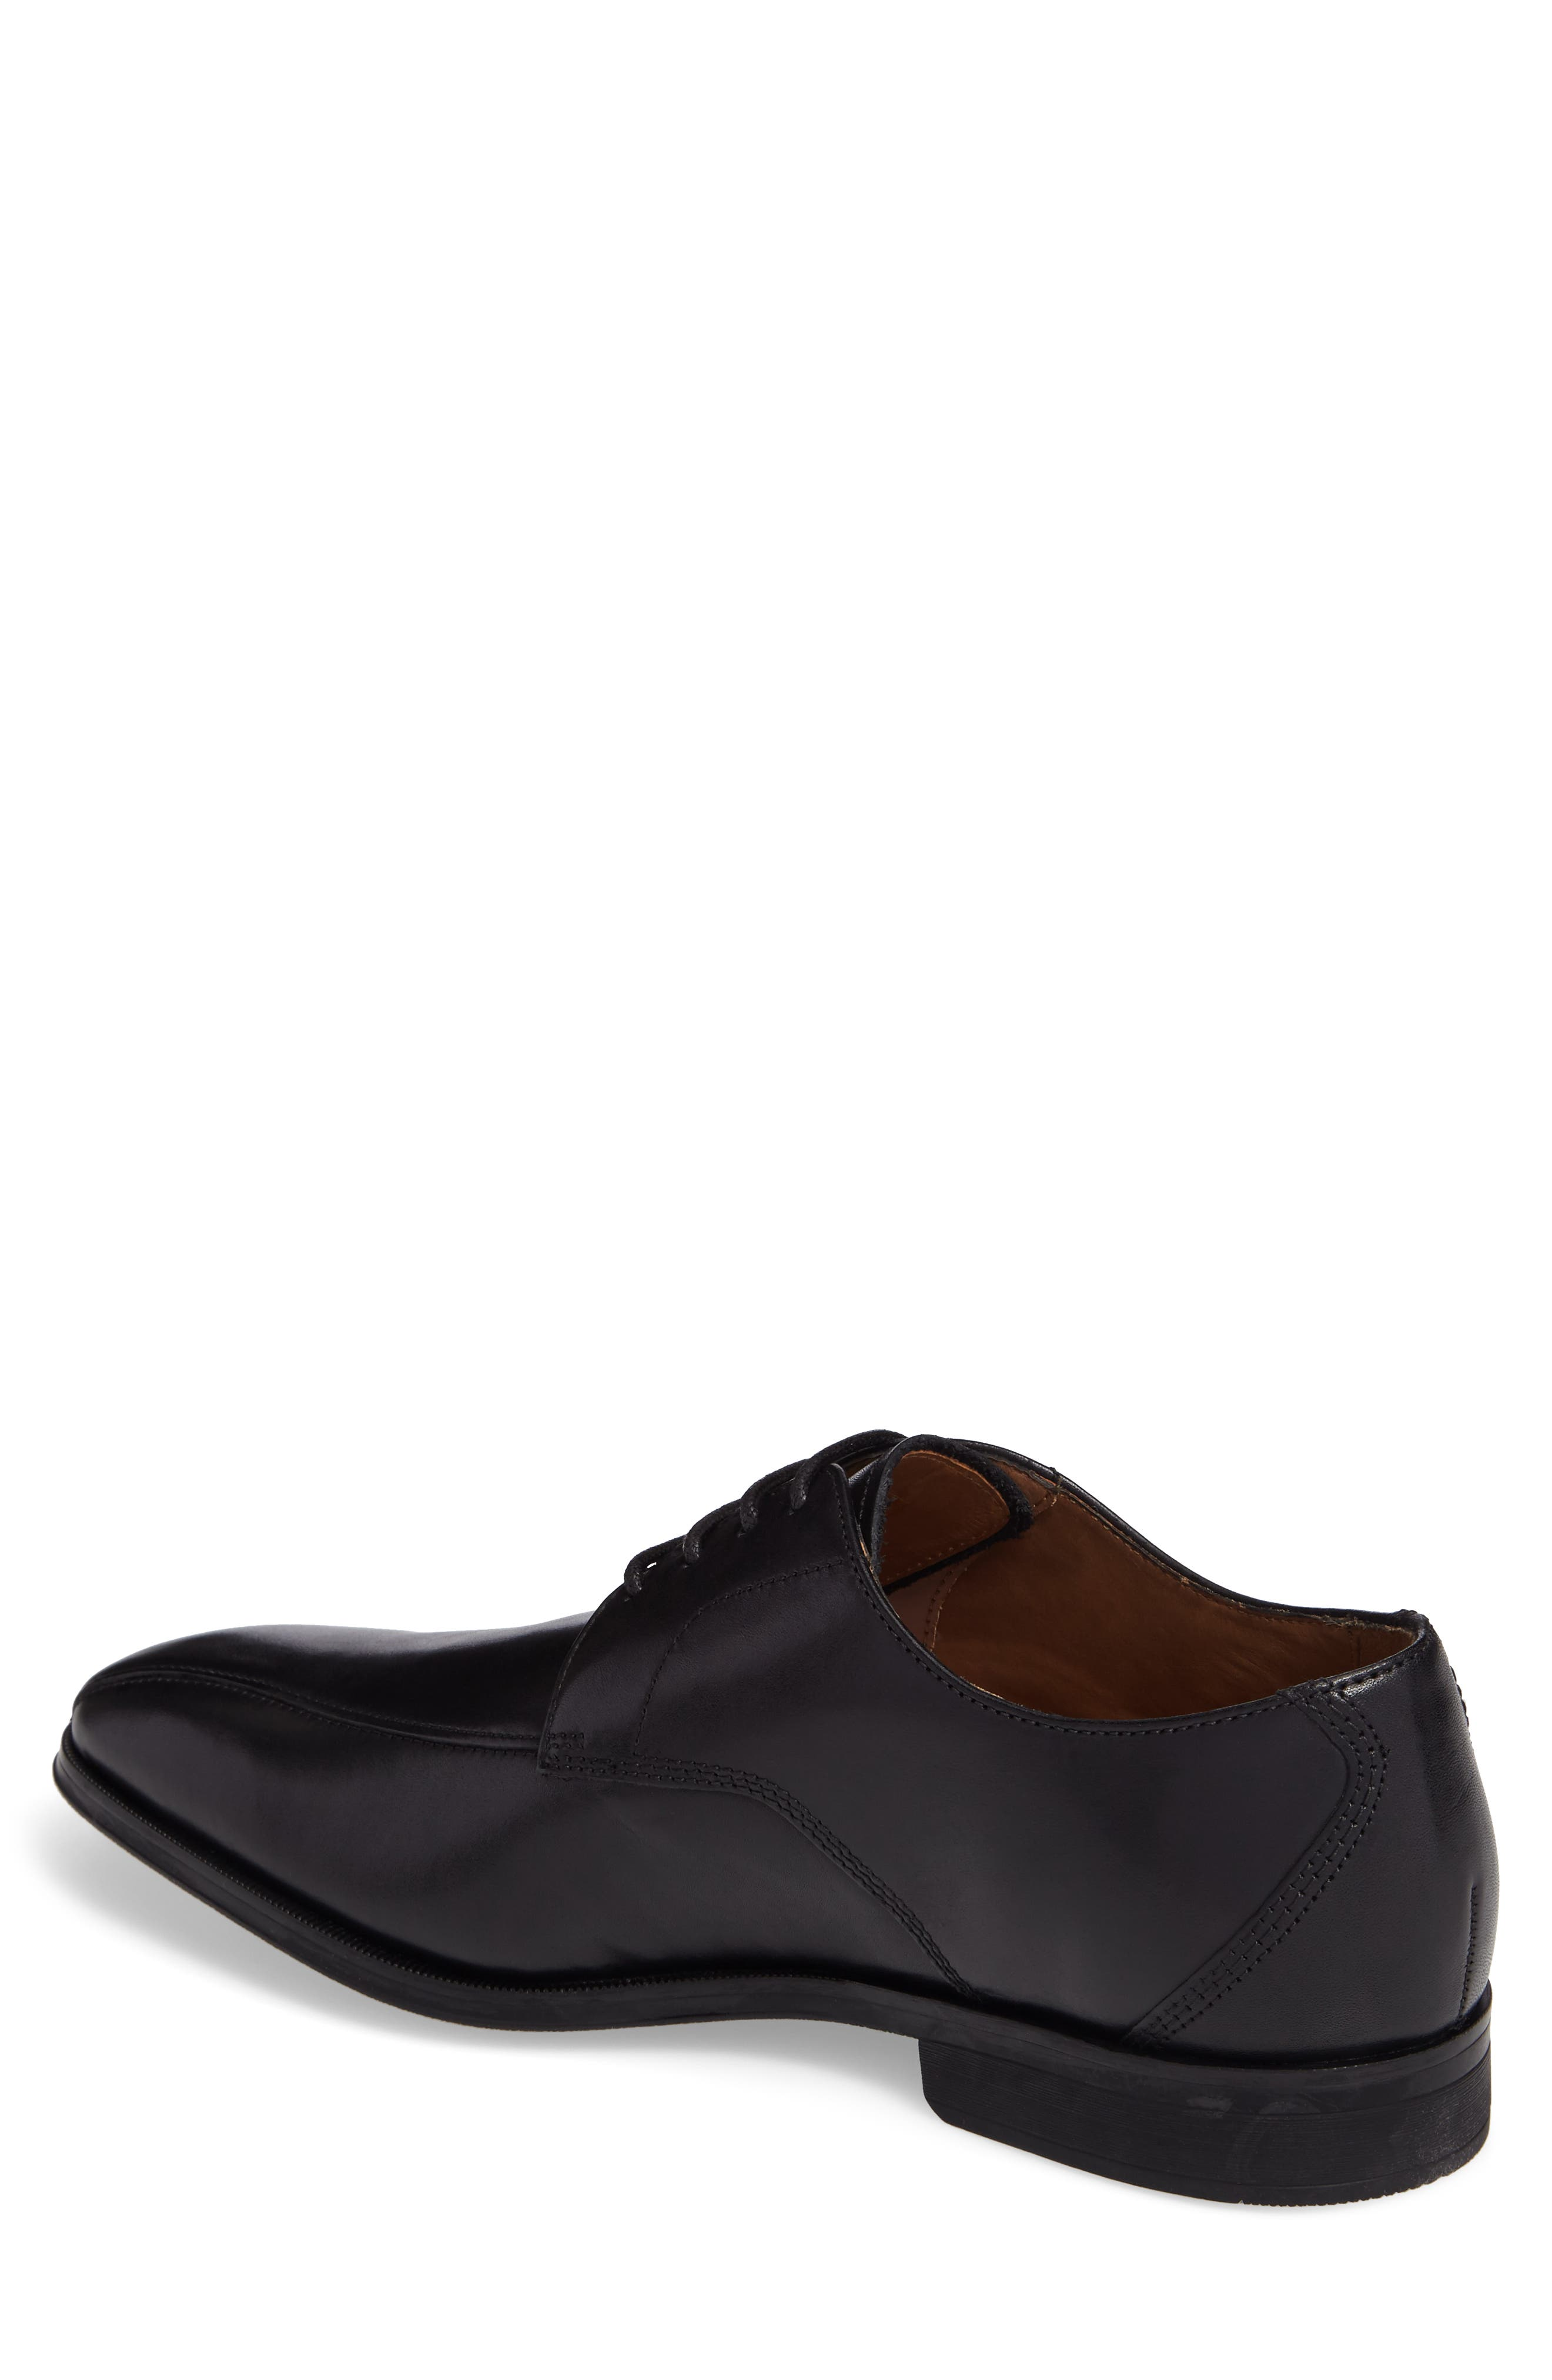 Clarks Gilman Mode Derby,                             Alternate thumbnail 2, color,                             BLACK LEATHER